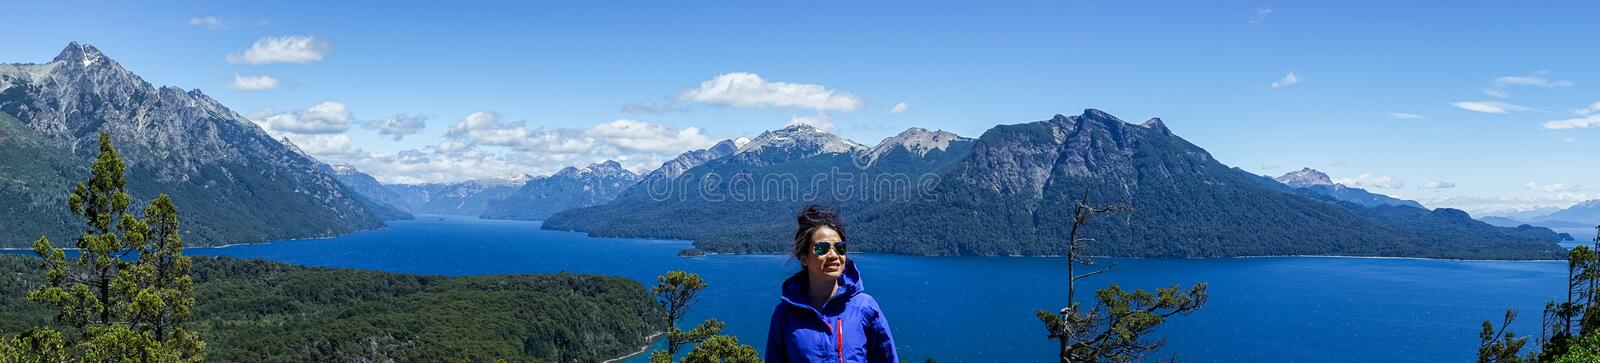 A woman tourist in the mountains and lakes of San Carlos de Bariloche, Argentina. Vistas of San Carlos de Bariloche, Argentina South America. Patagonia stock photography